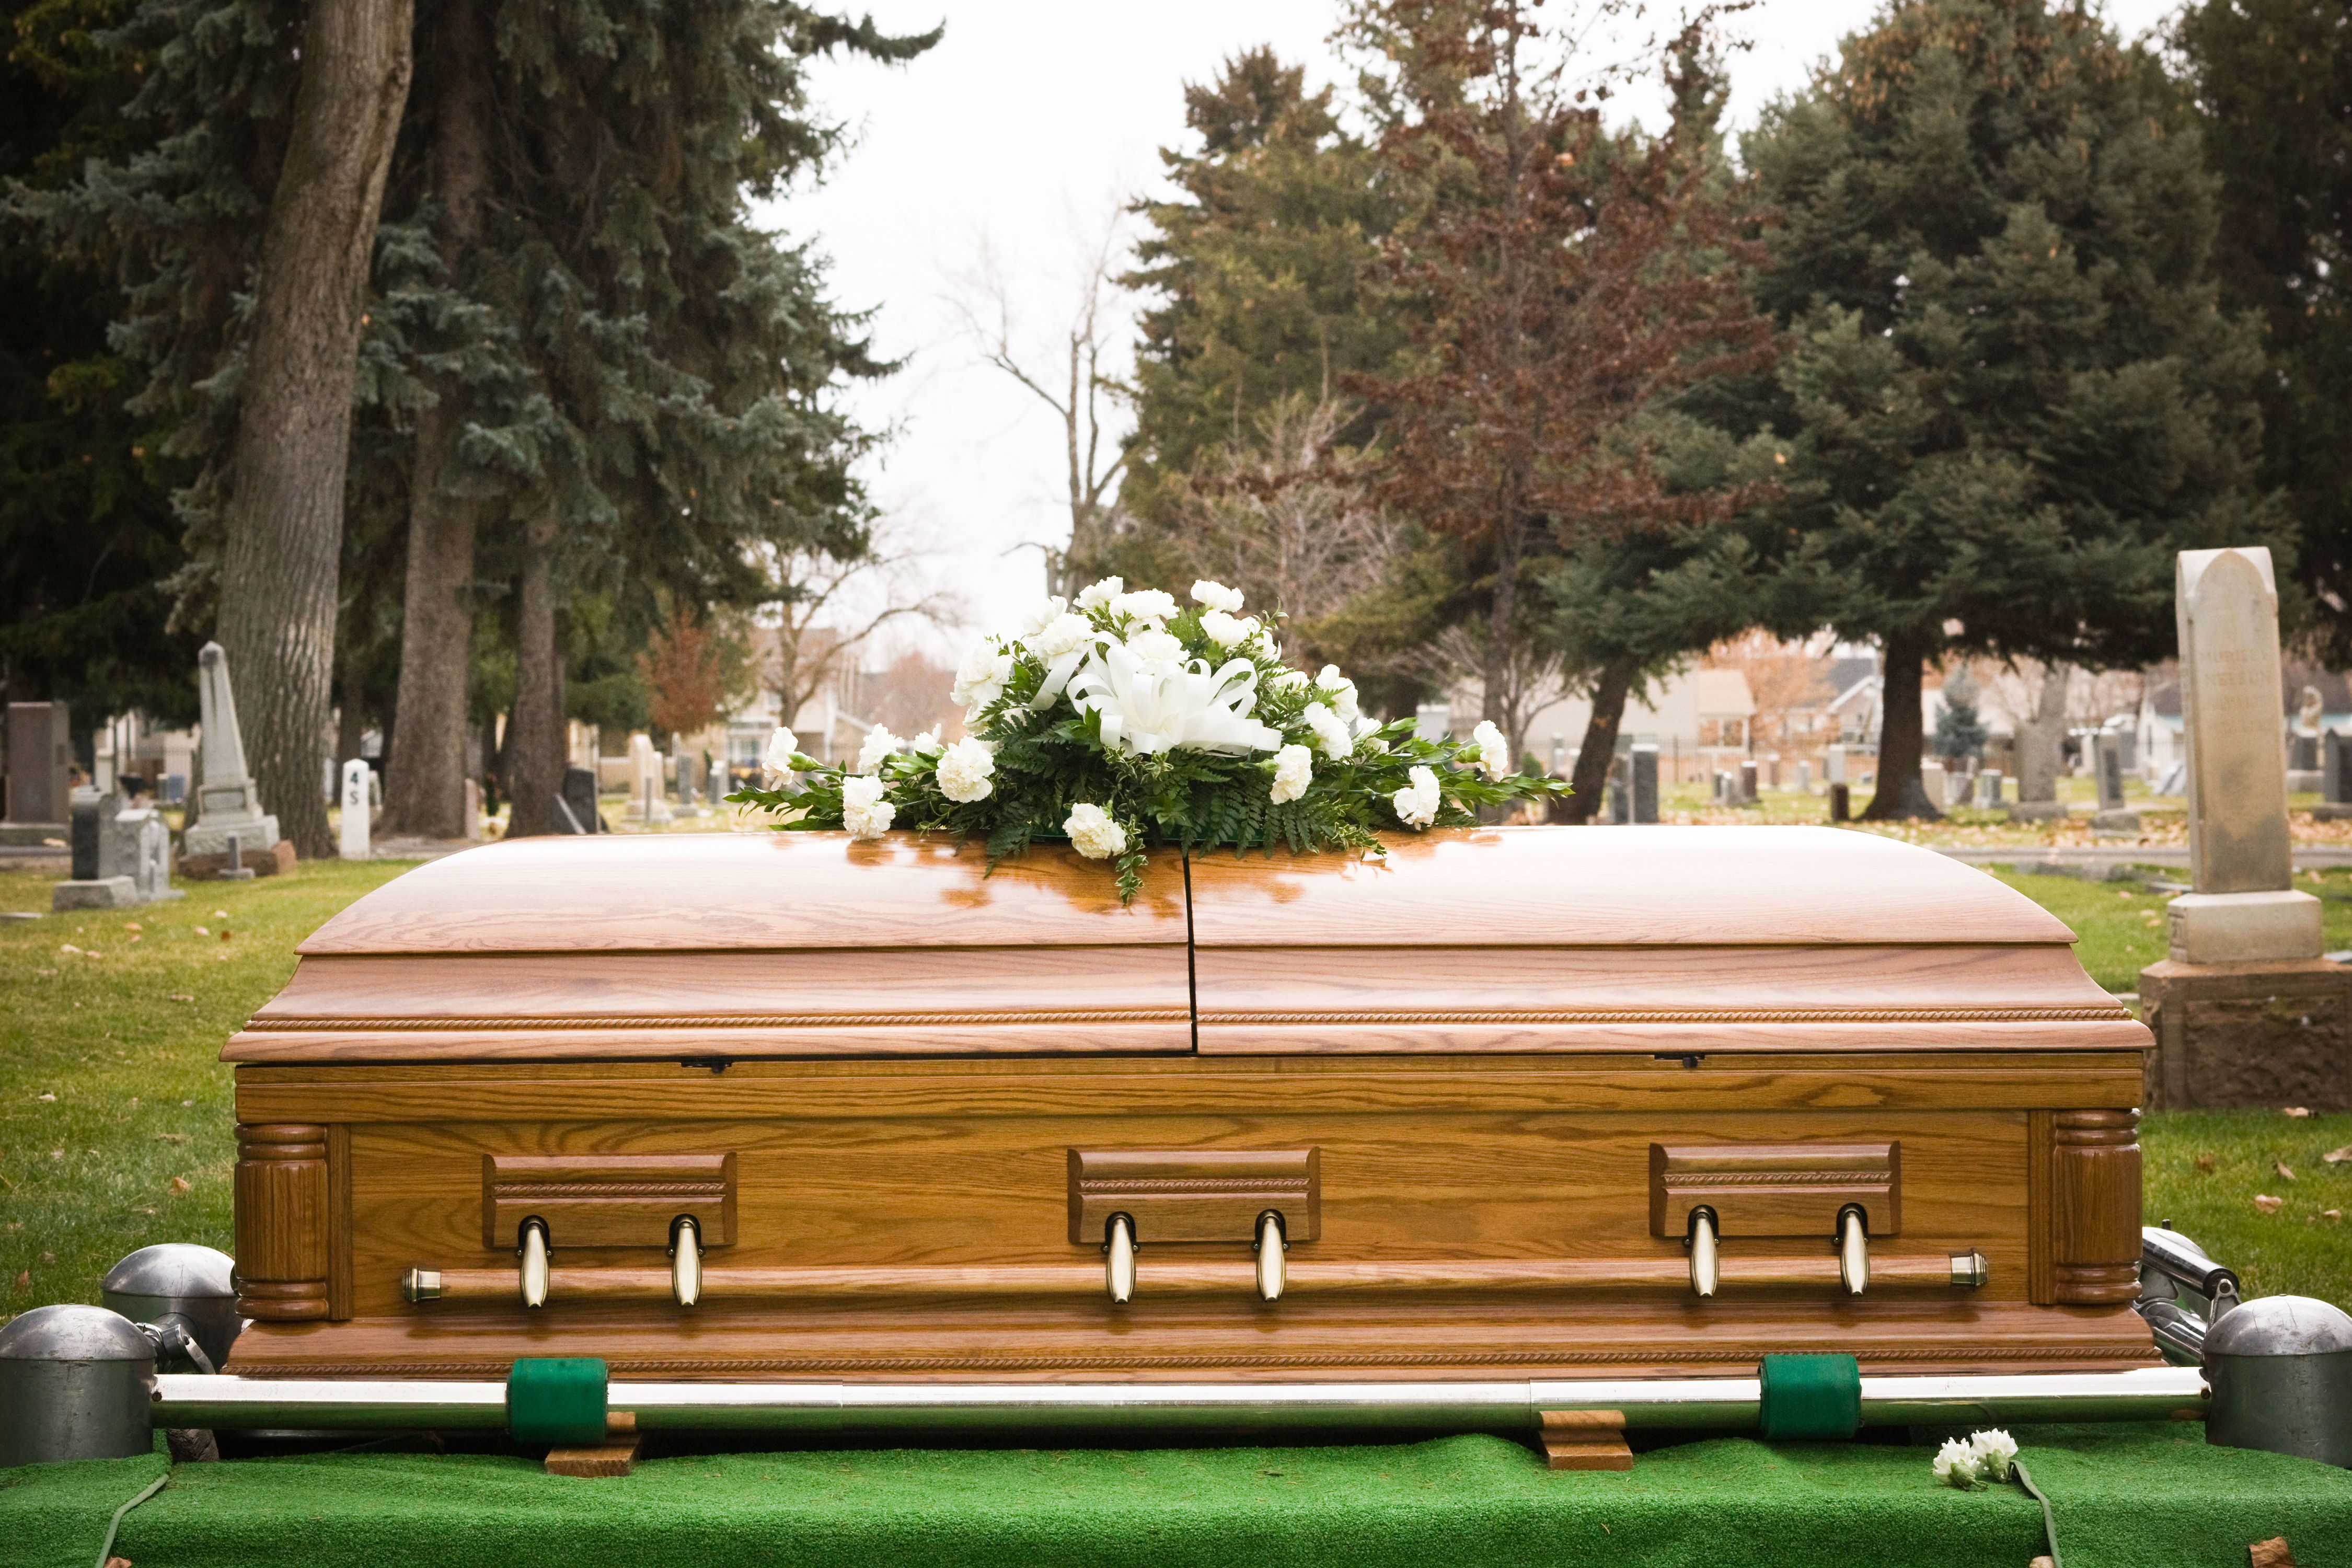 10 Things Funeral Directors Don\'t Want You to Know - Southern Living